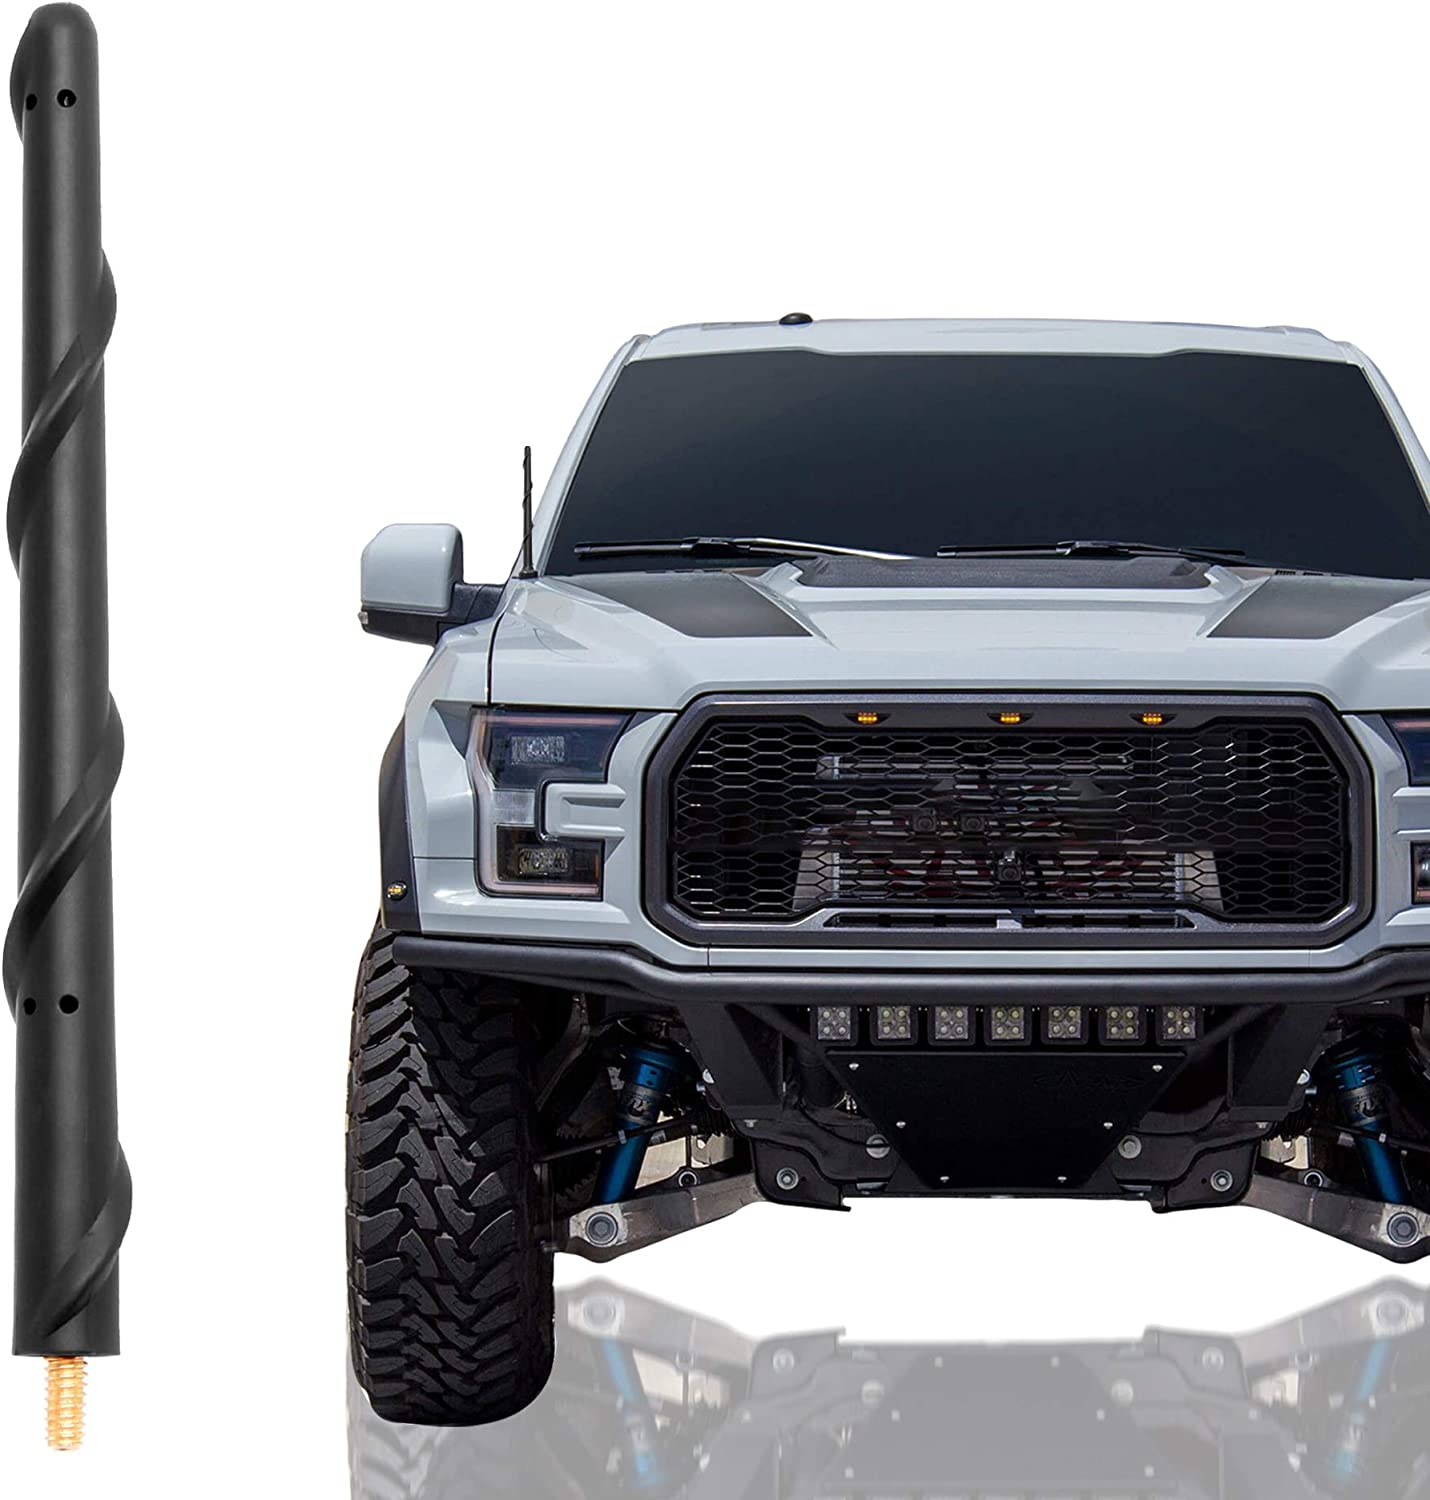 KSaAuto Short Antenna Compatible with Ford F150 2009-2021